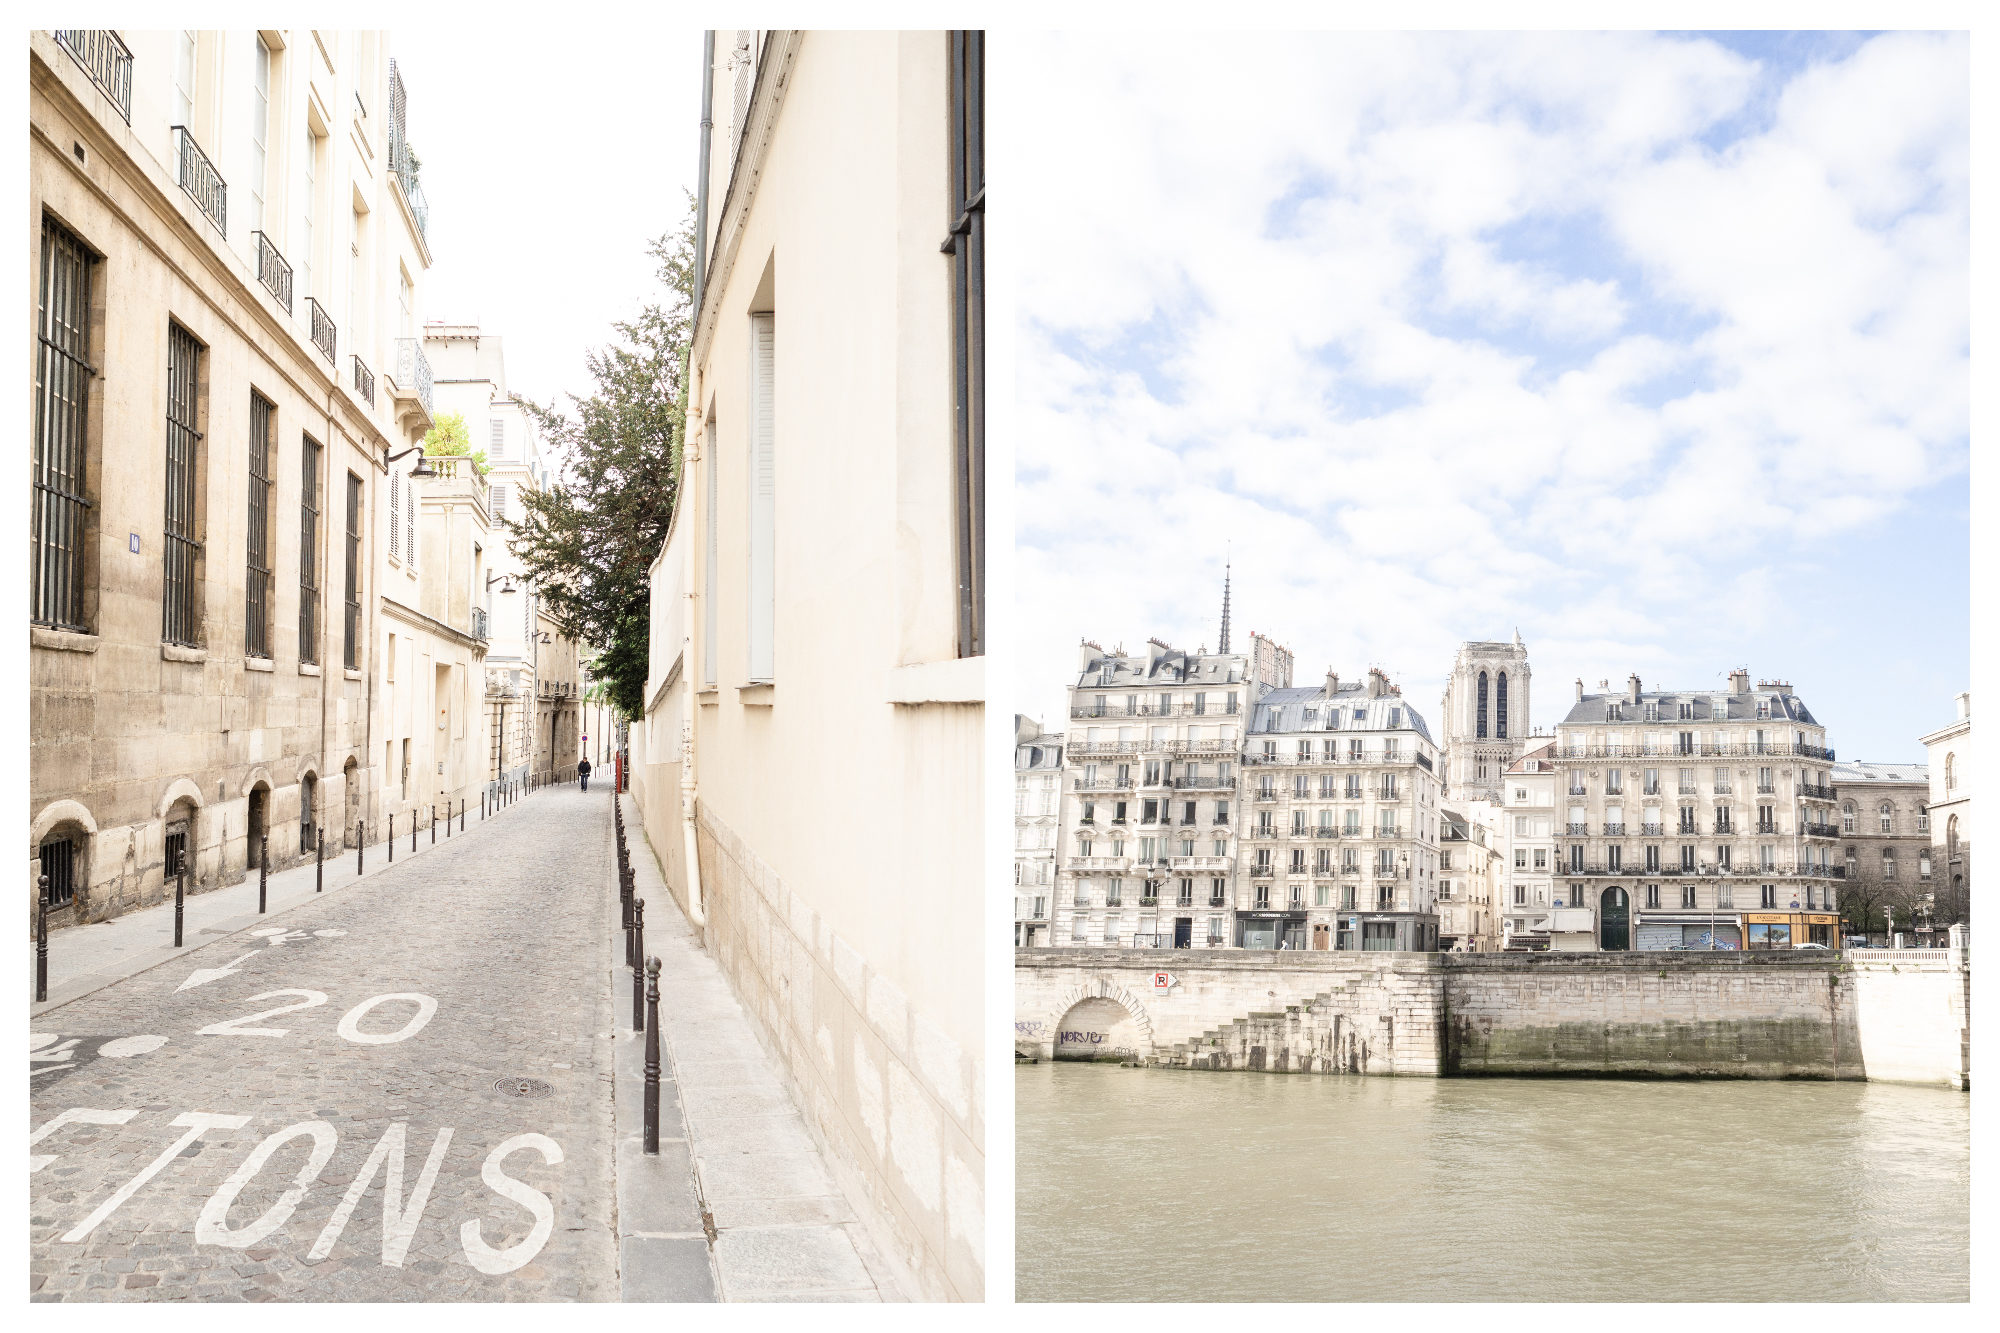 Cobblestone streets of Paris in the Marais (left) and a view of the beautiful stone buildings living the River Seine with Notre Dame peeping out from the top (right).